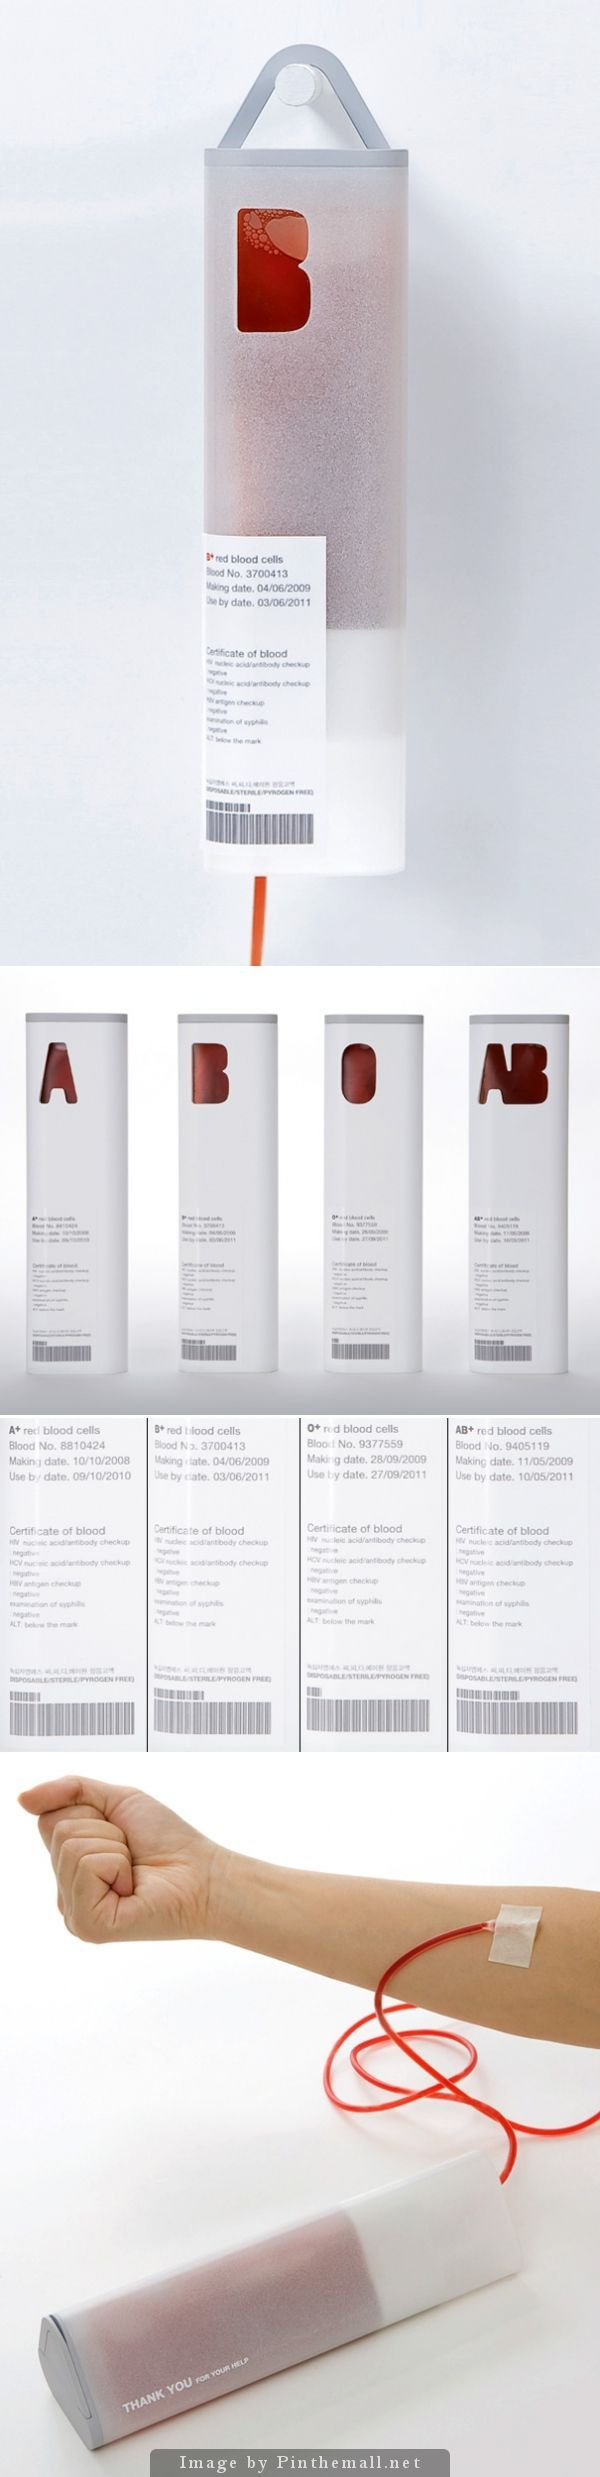 Pretty yet functional blood transfusion and collection #packaging: